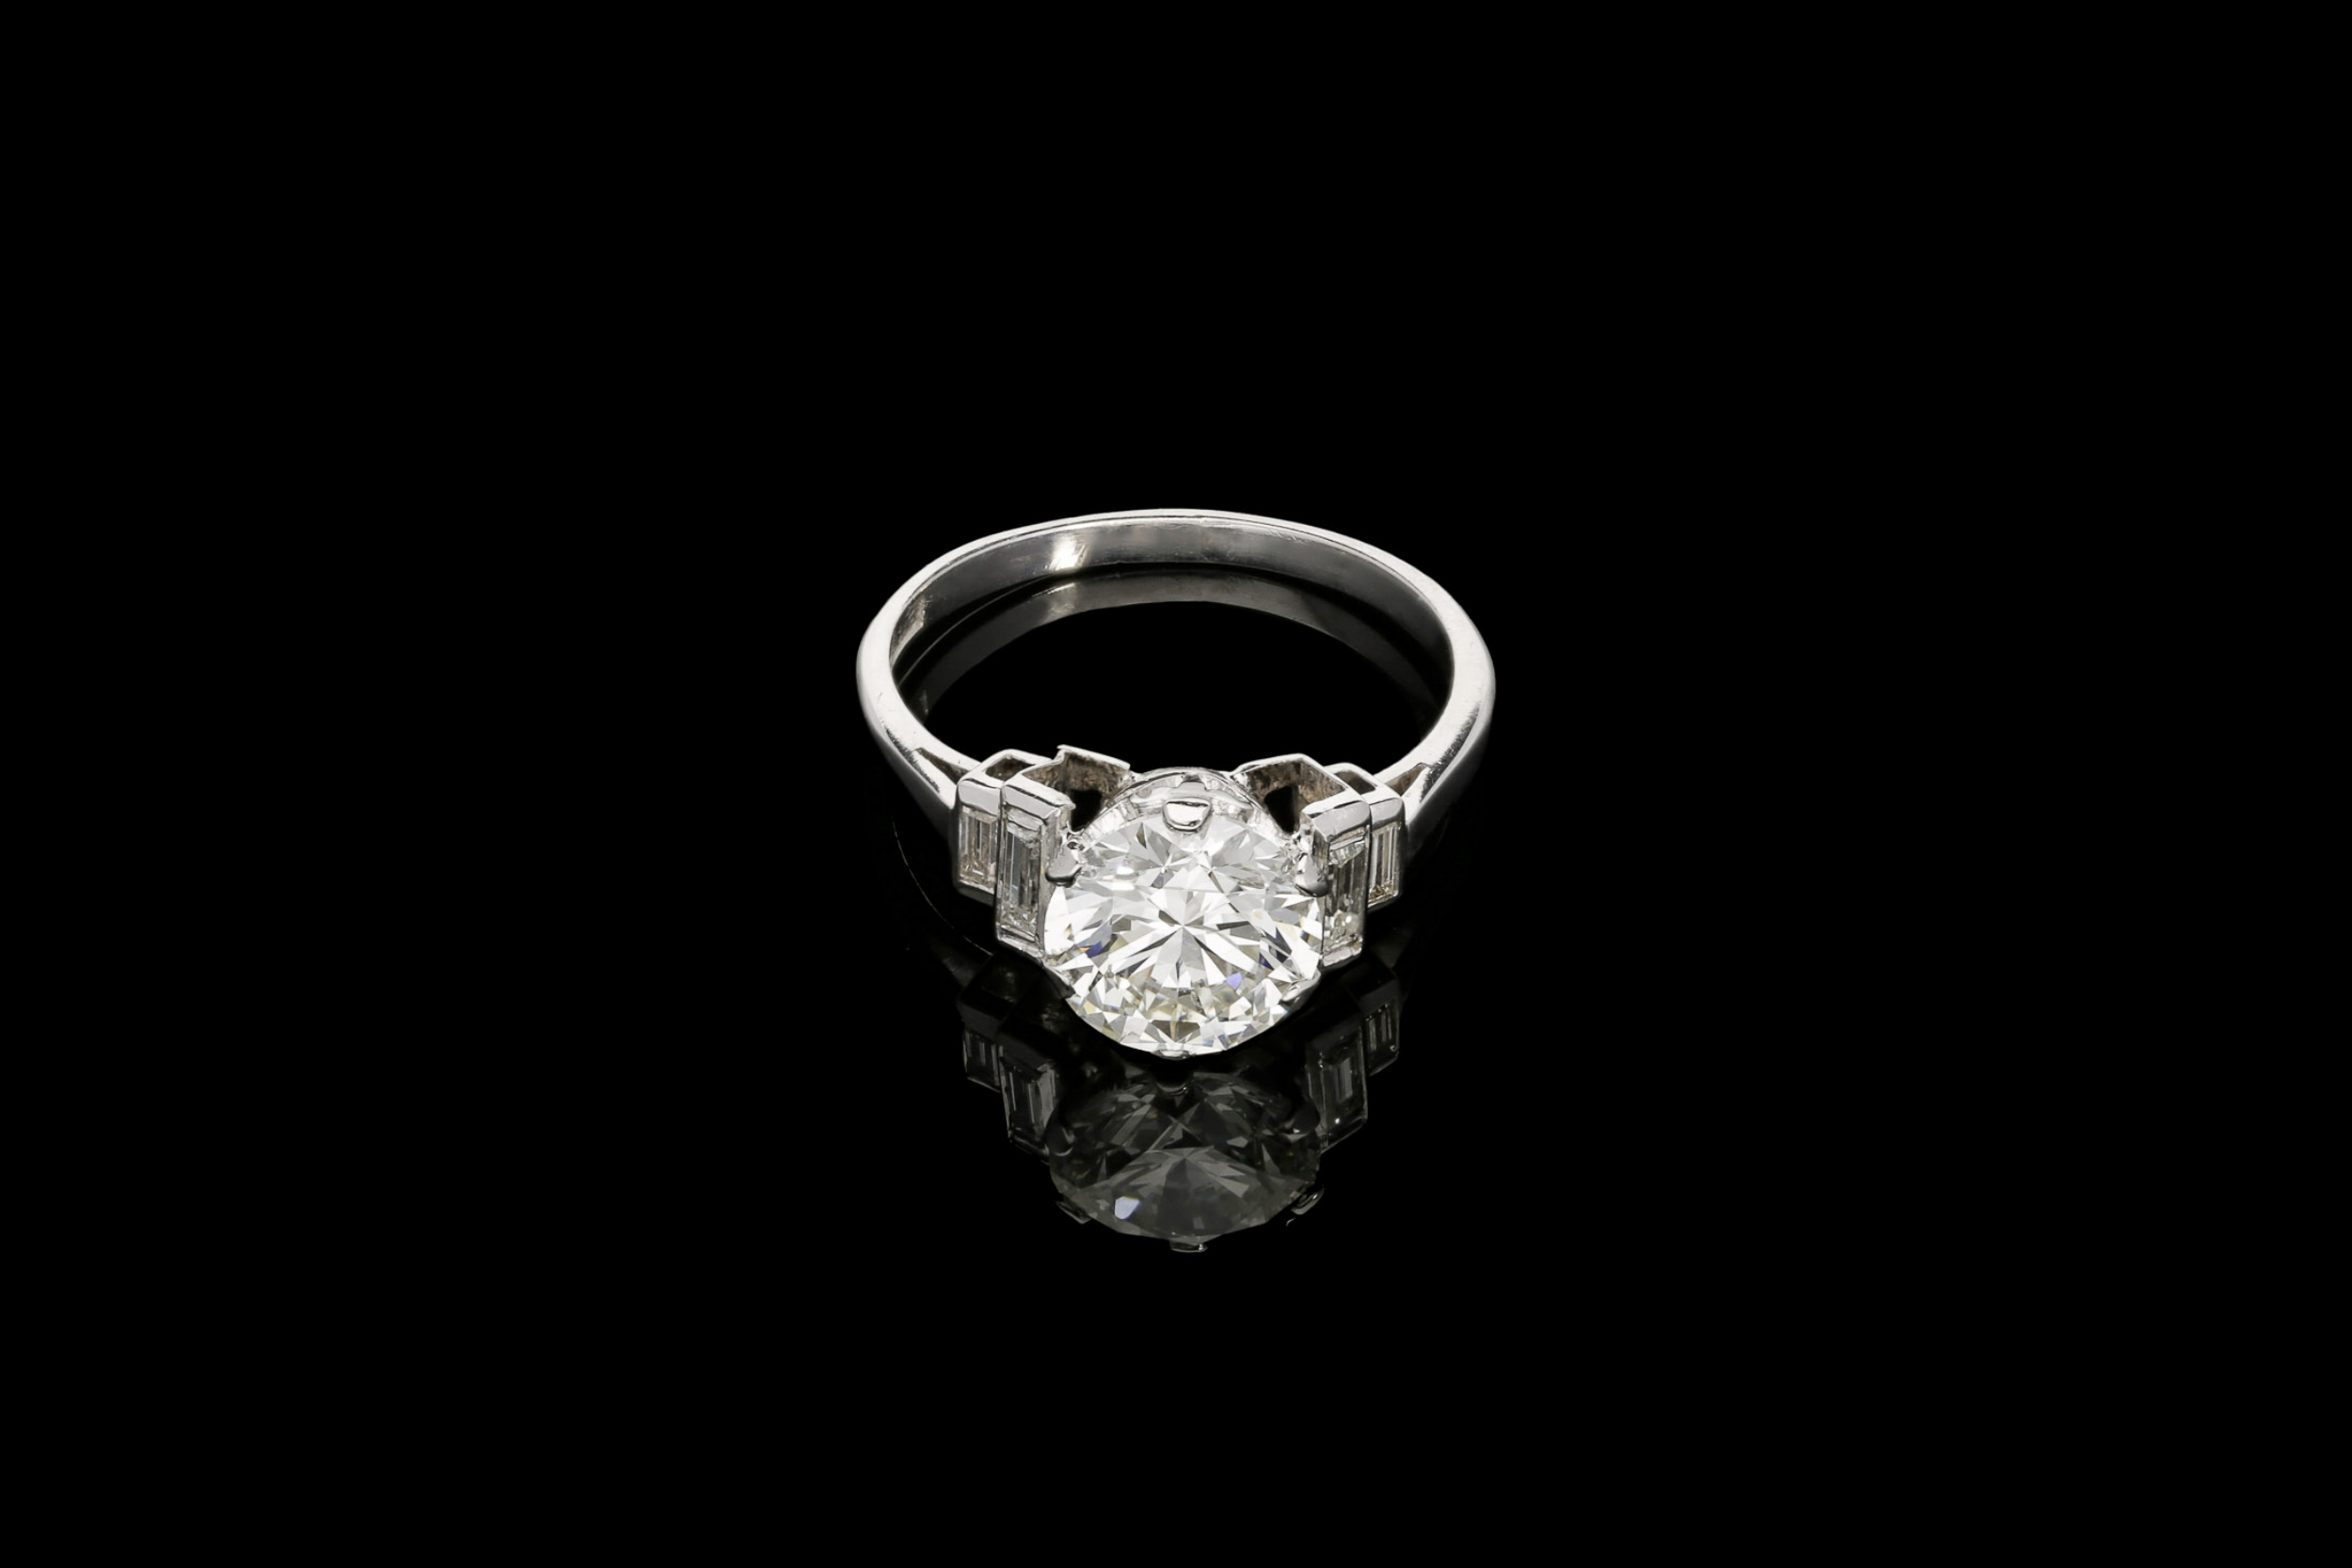 A delightful Art Deco ring | £25920